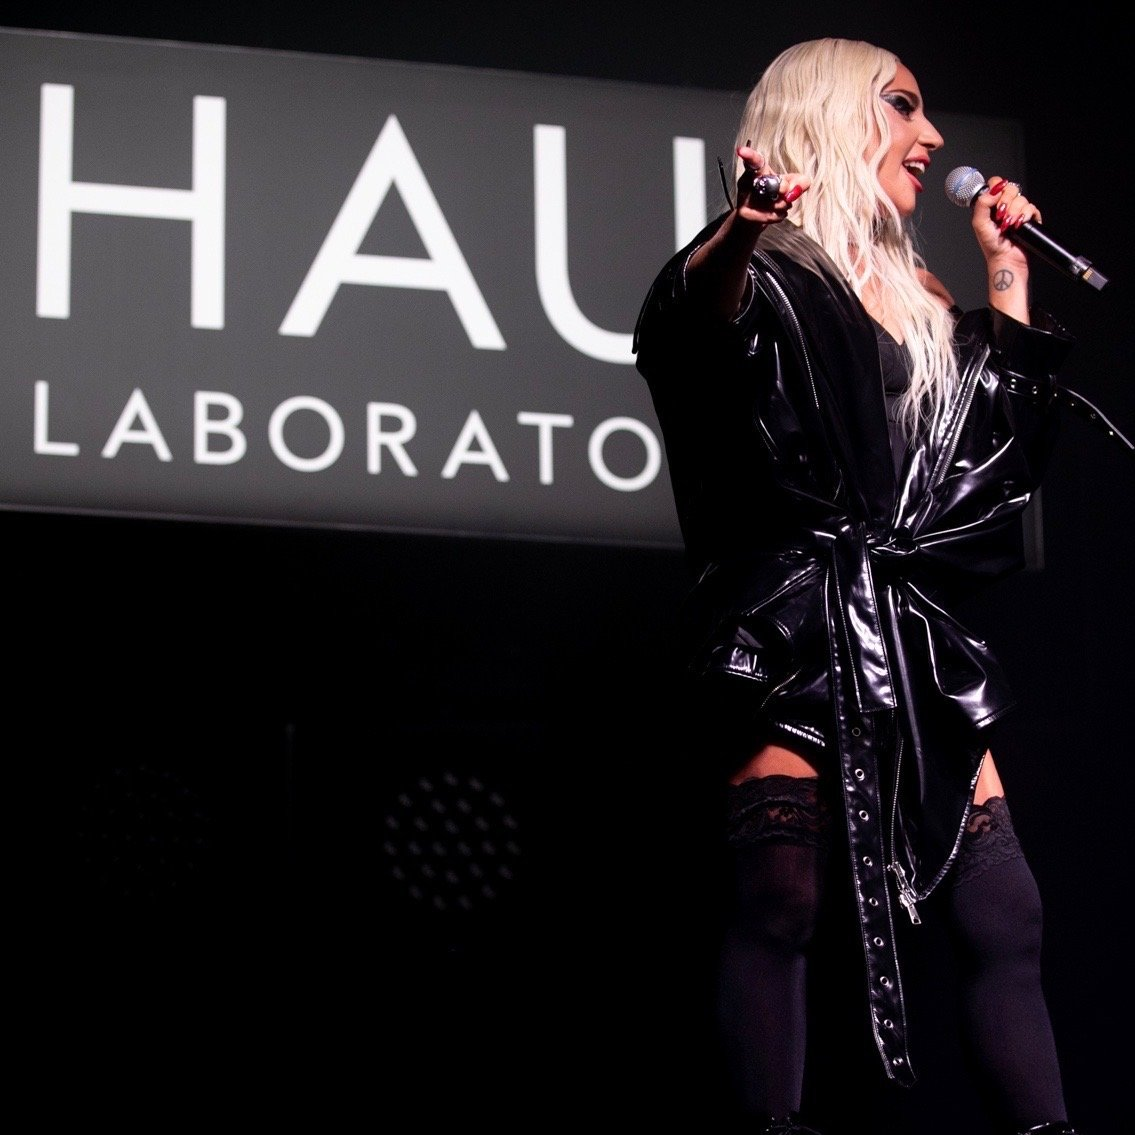 OUR HAUS. YOUR RULES. One year ago, we were celebrating our official brand launch at our first-ever #hausparty Today, celebrate ONE year of hauslabs.com with us🤘Head over to find our original lineup for 25% OFF now through Monday! @ladygaga